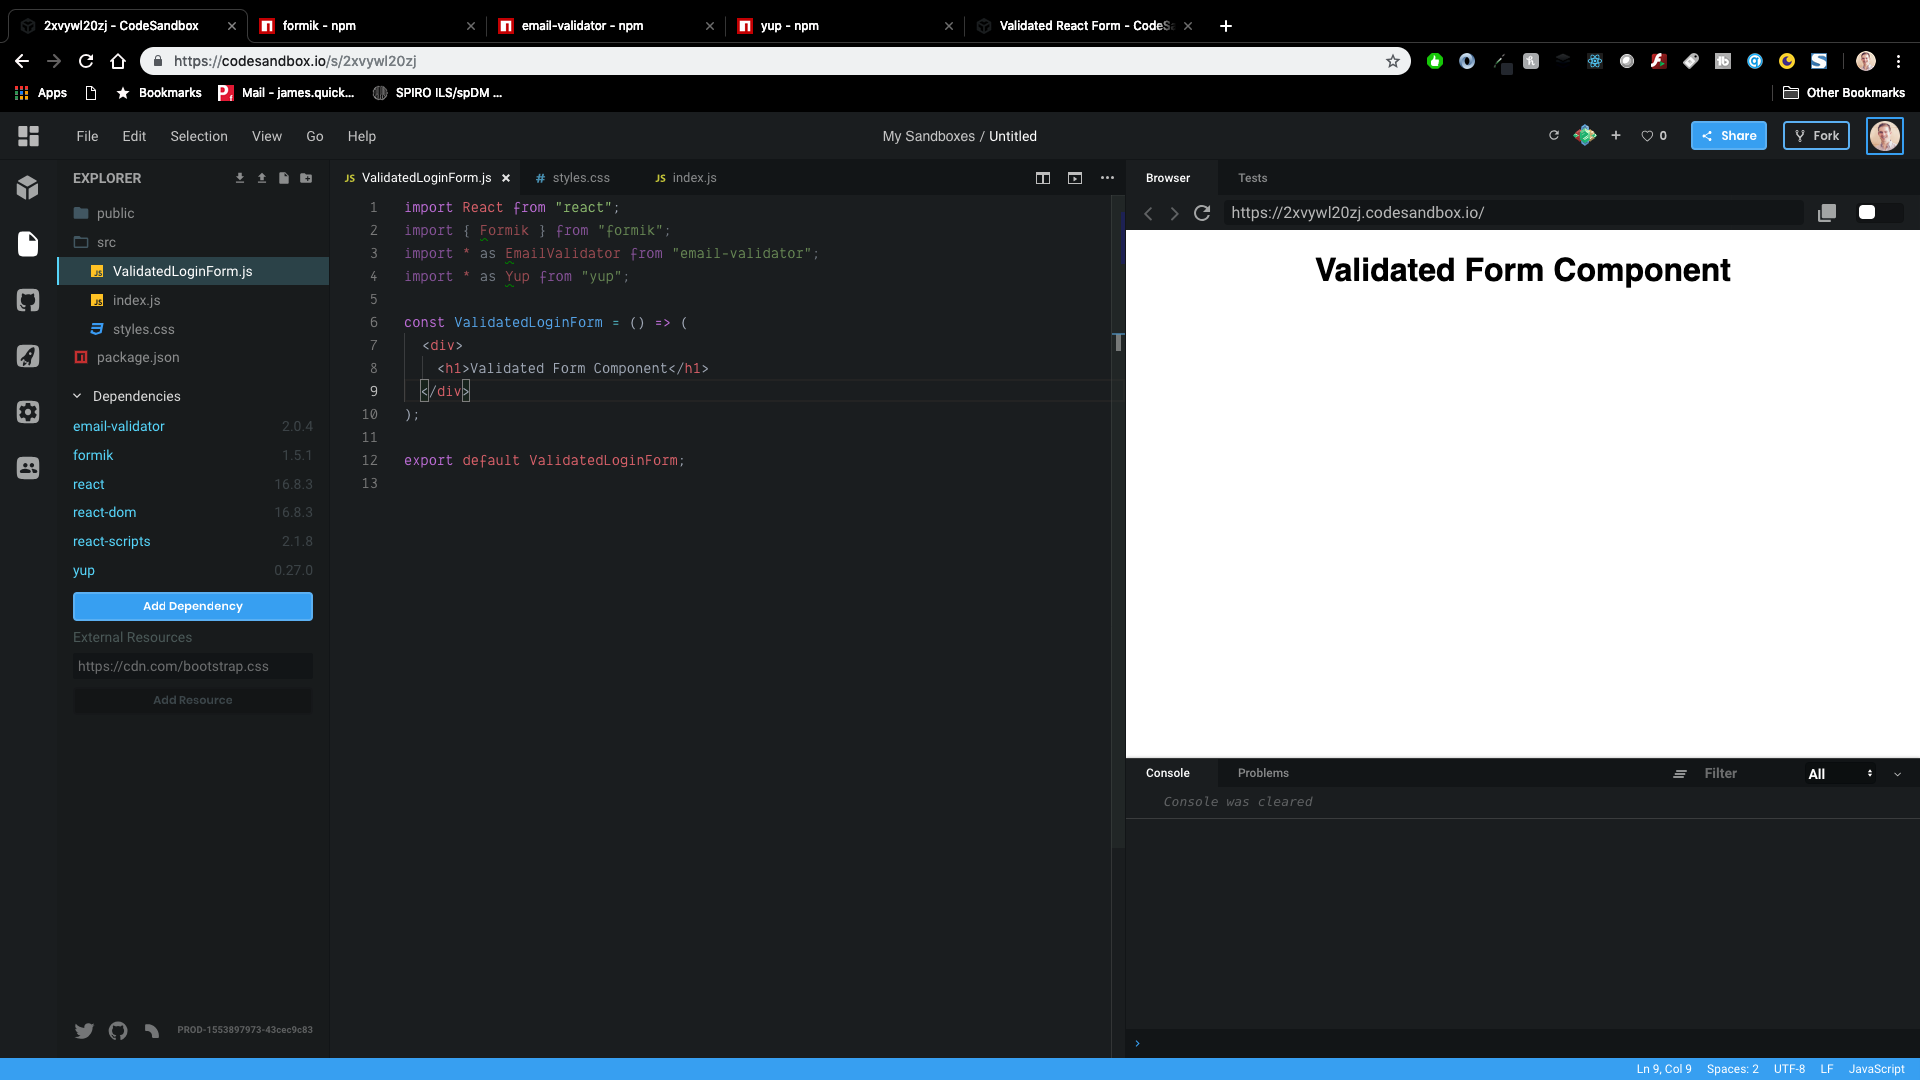 Validated Form Component in CodeSandbox